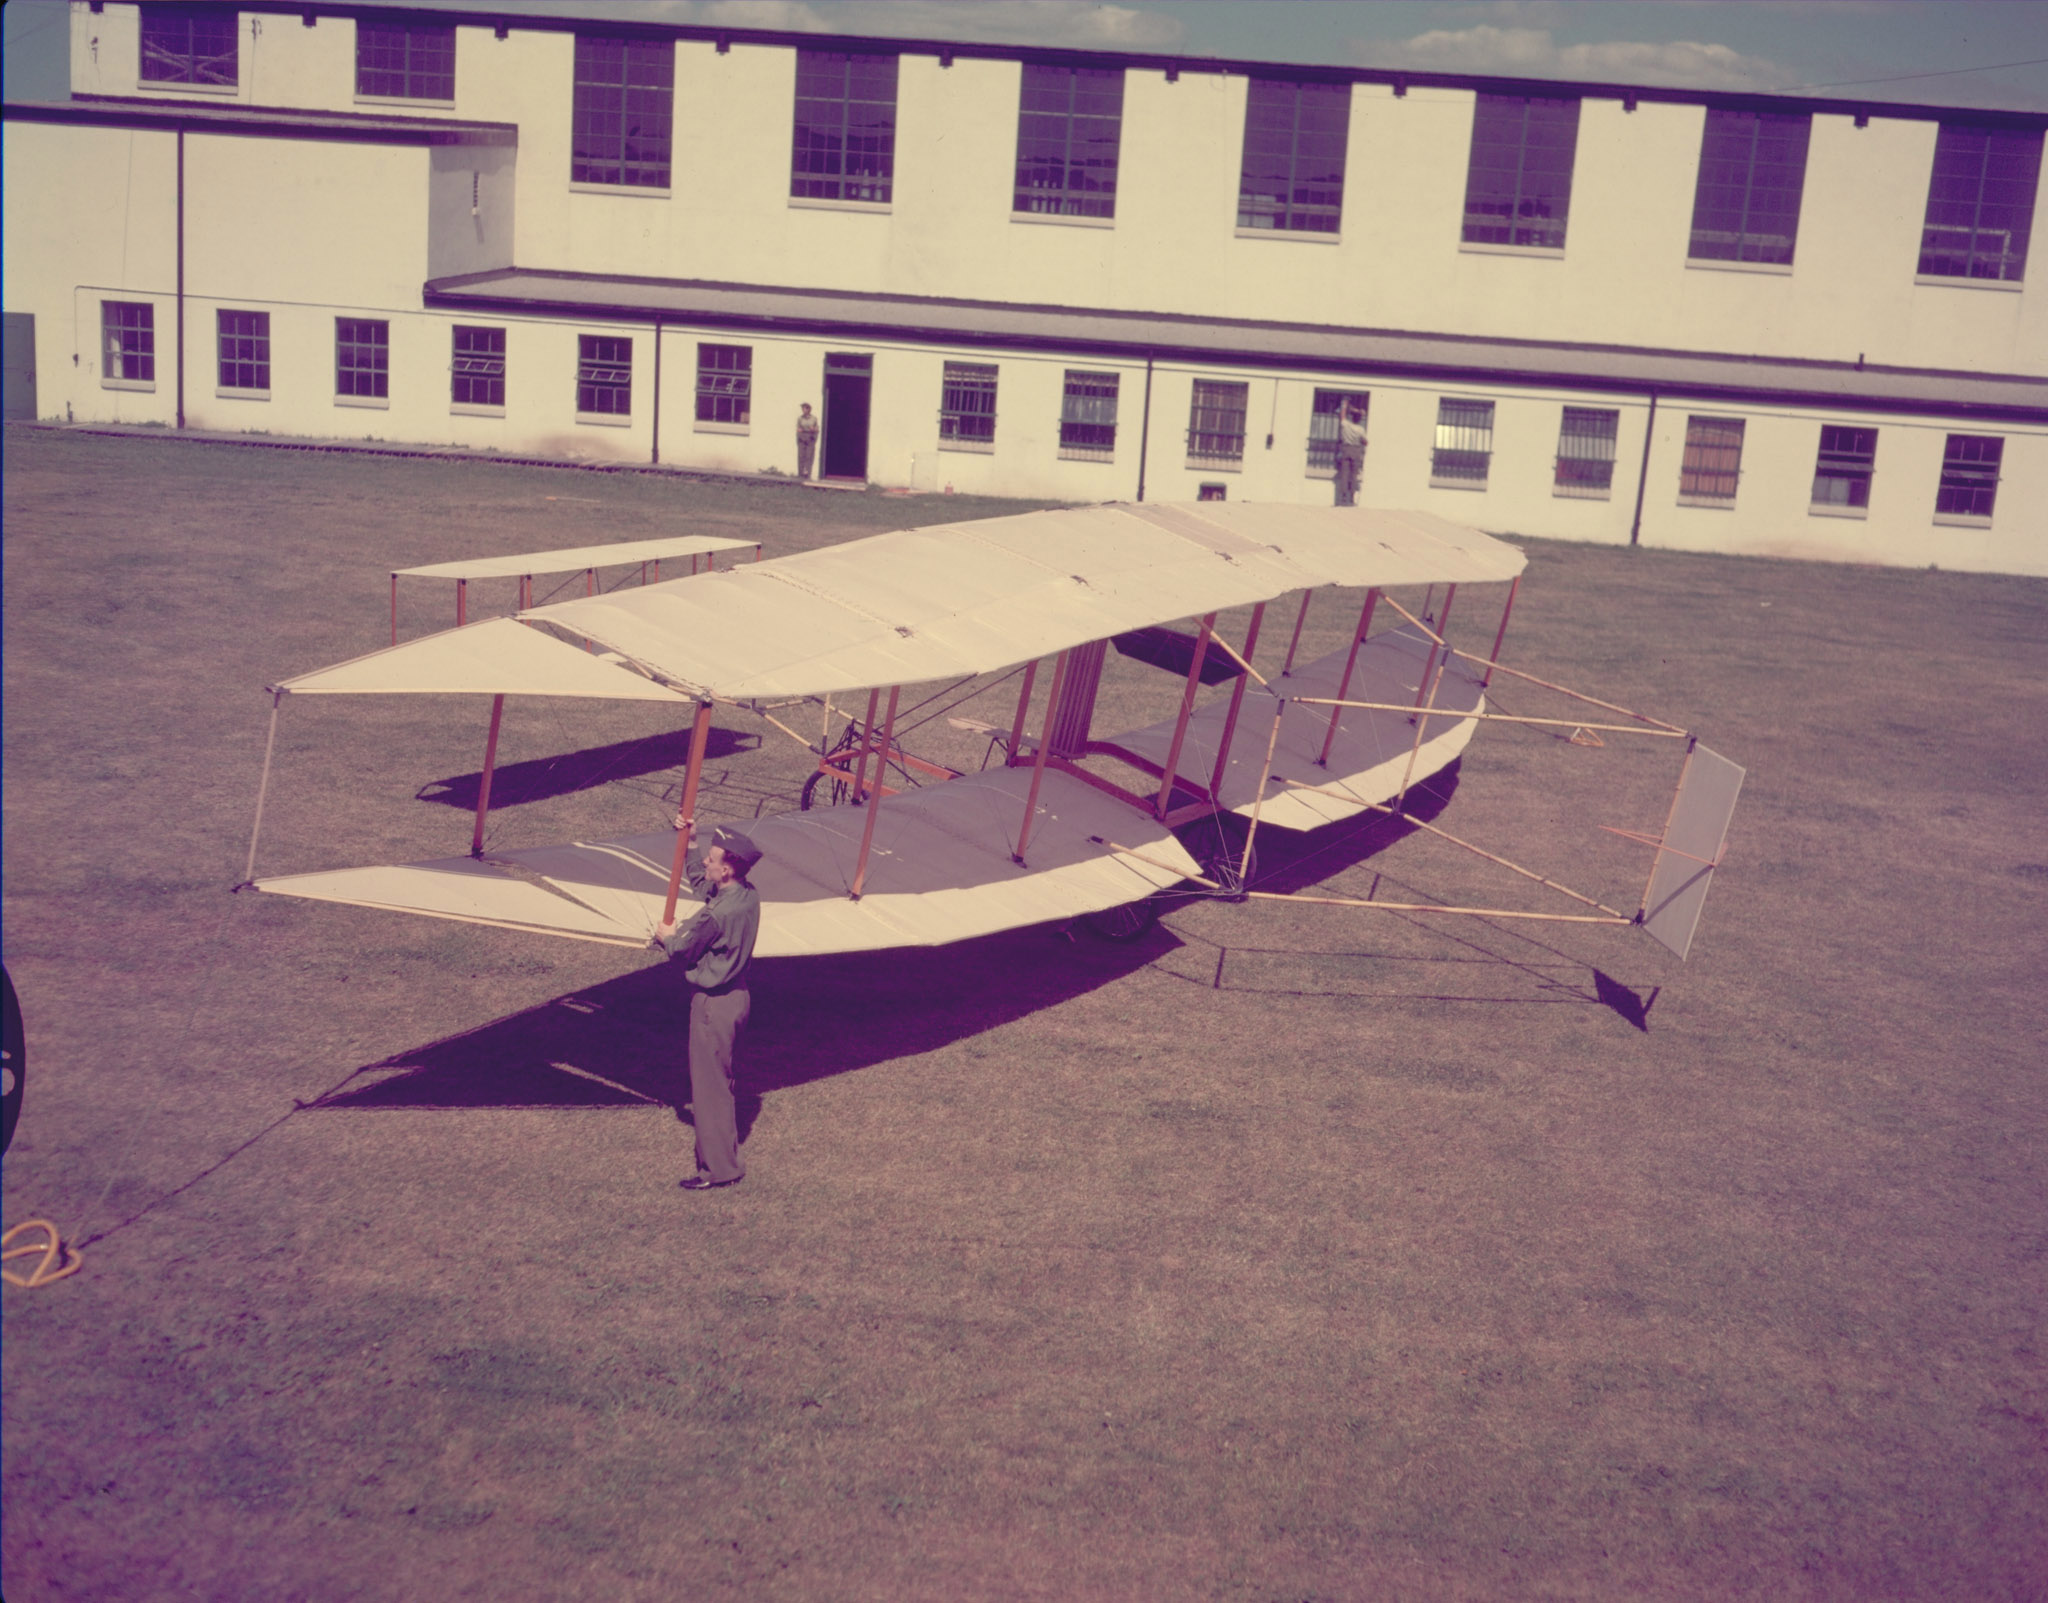 A replica of the Silver Dart aircraft under construction at RCAF Station Trenton, Ontario, in 1958. PHOTO: PC-2284, DND Archives